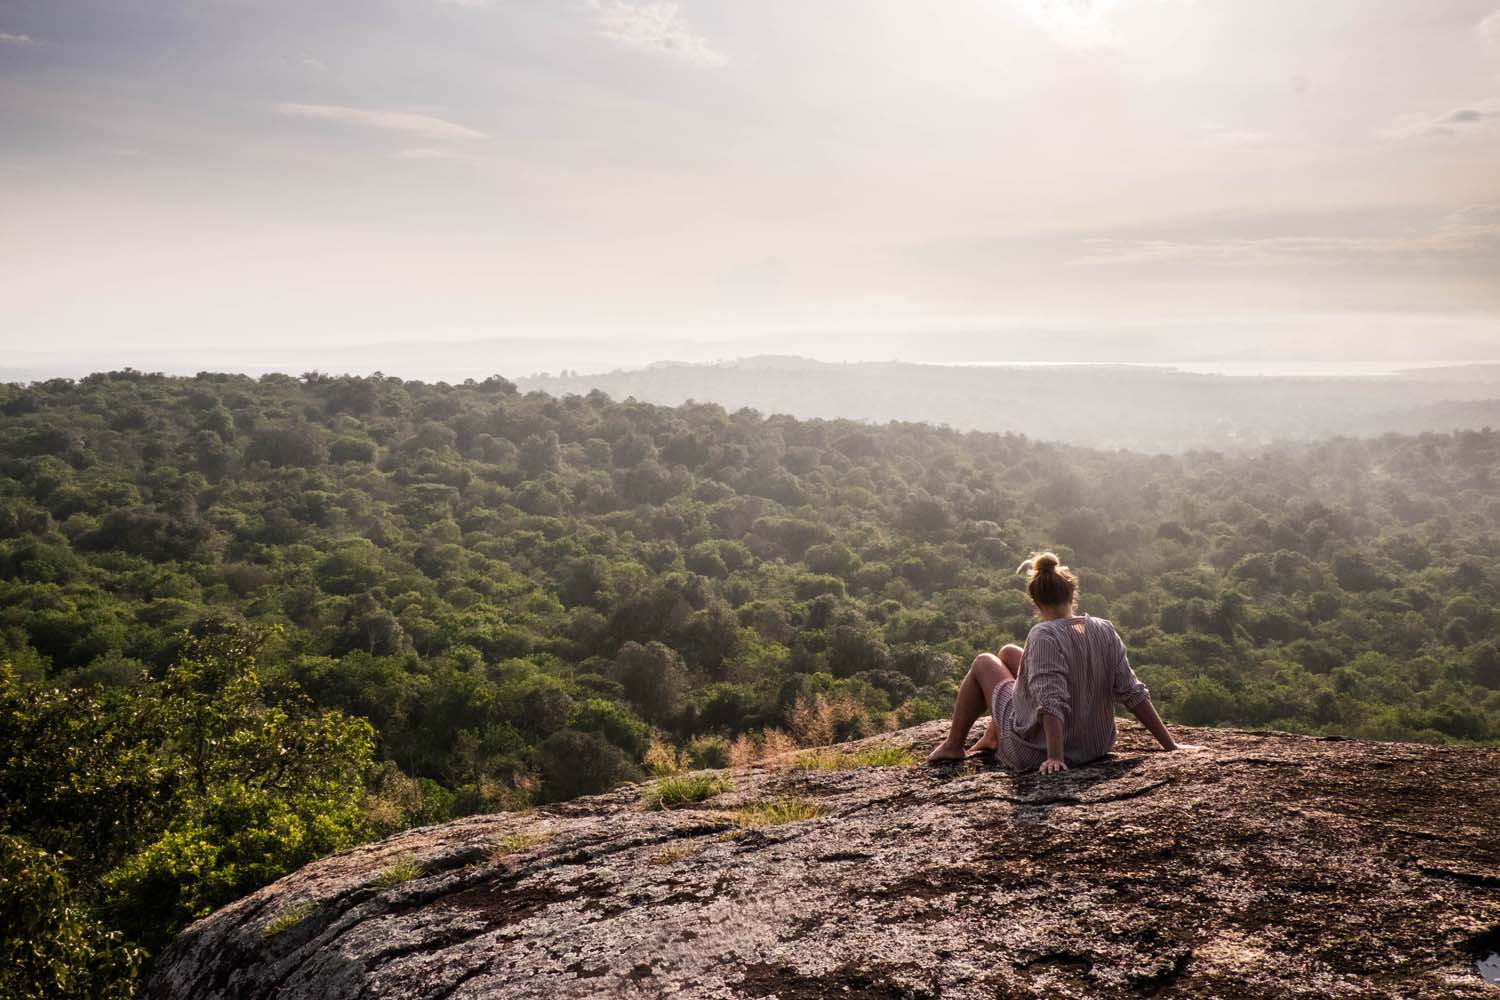 Do you want to combine the experience of staying in one of the top luxury lodges in Uganda, Africa with some innocent monkey business? I've found just the place for you in the country's most charming national park Lake Mburo.